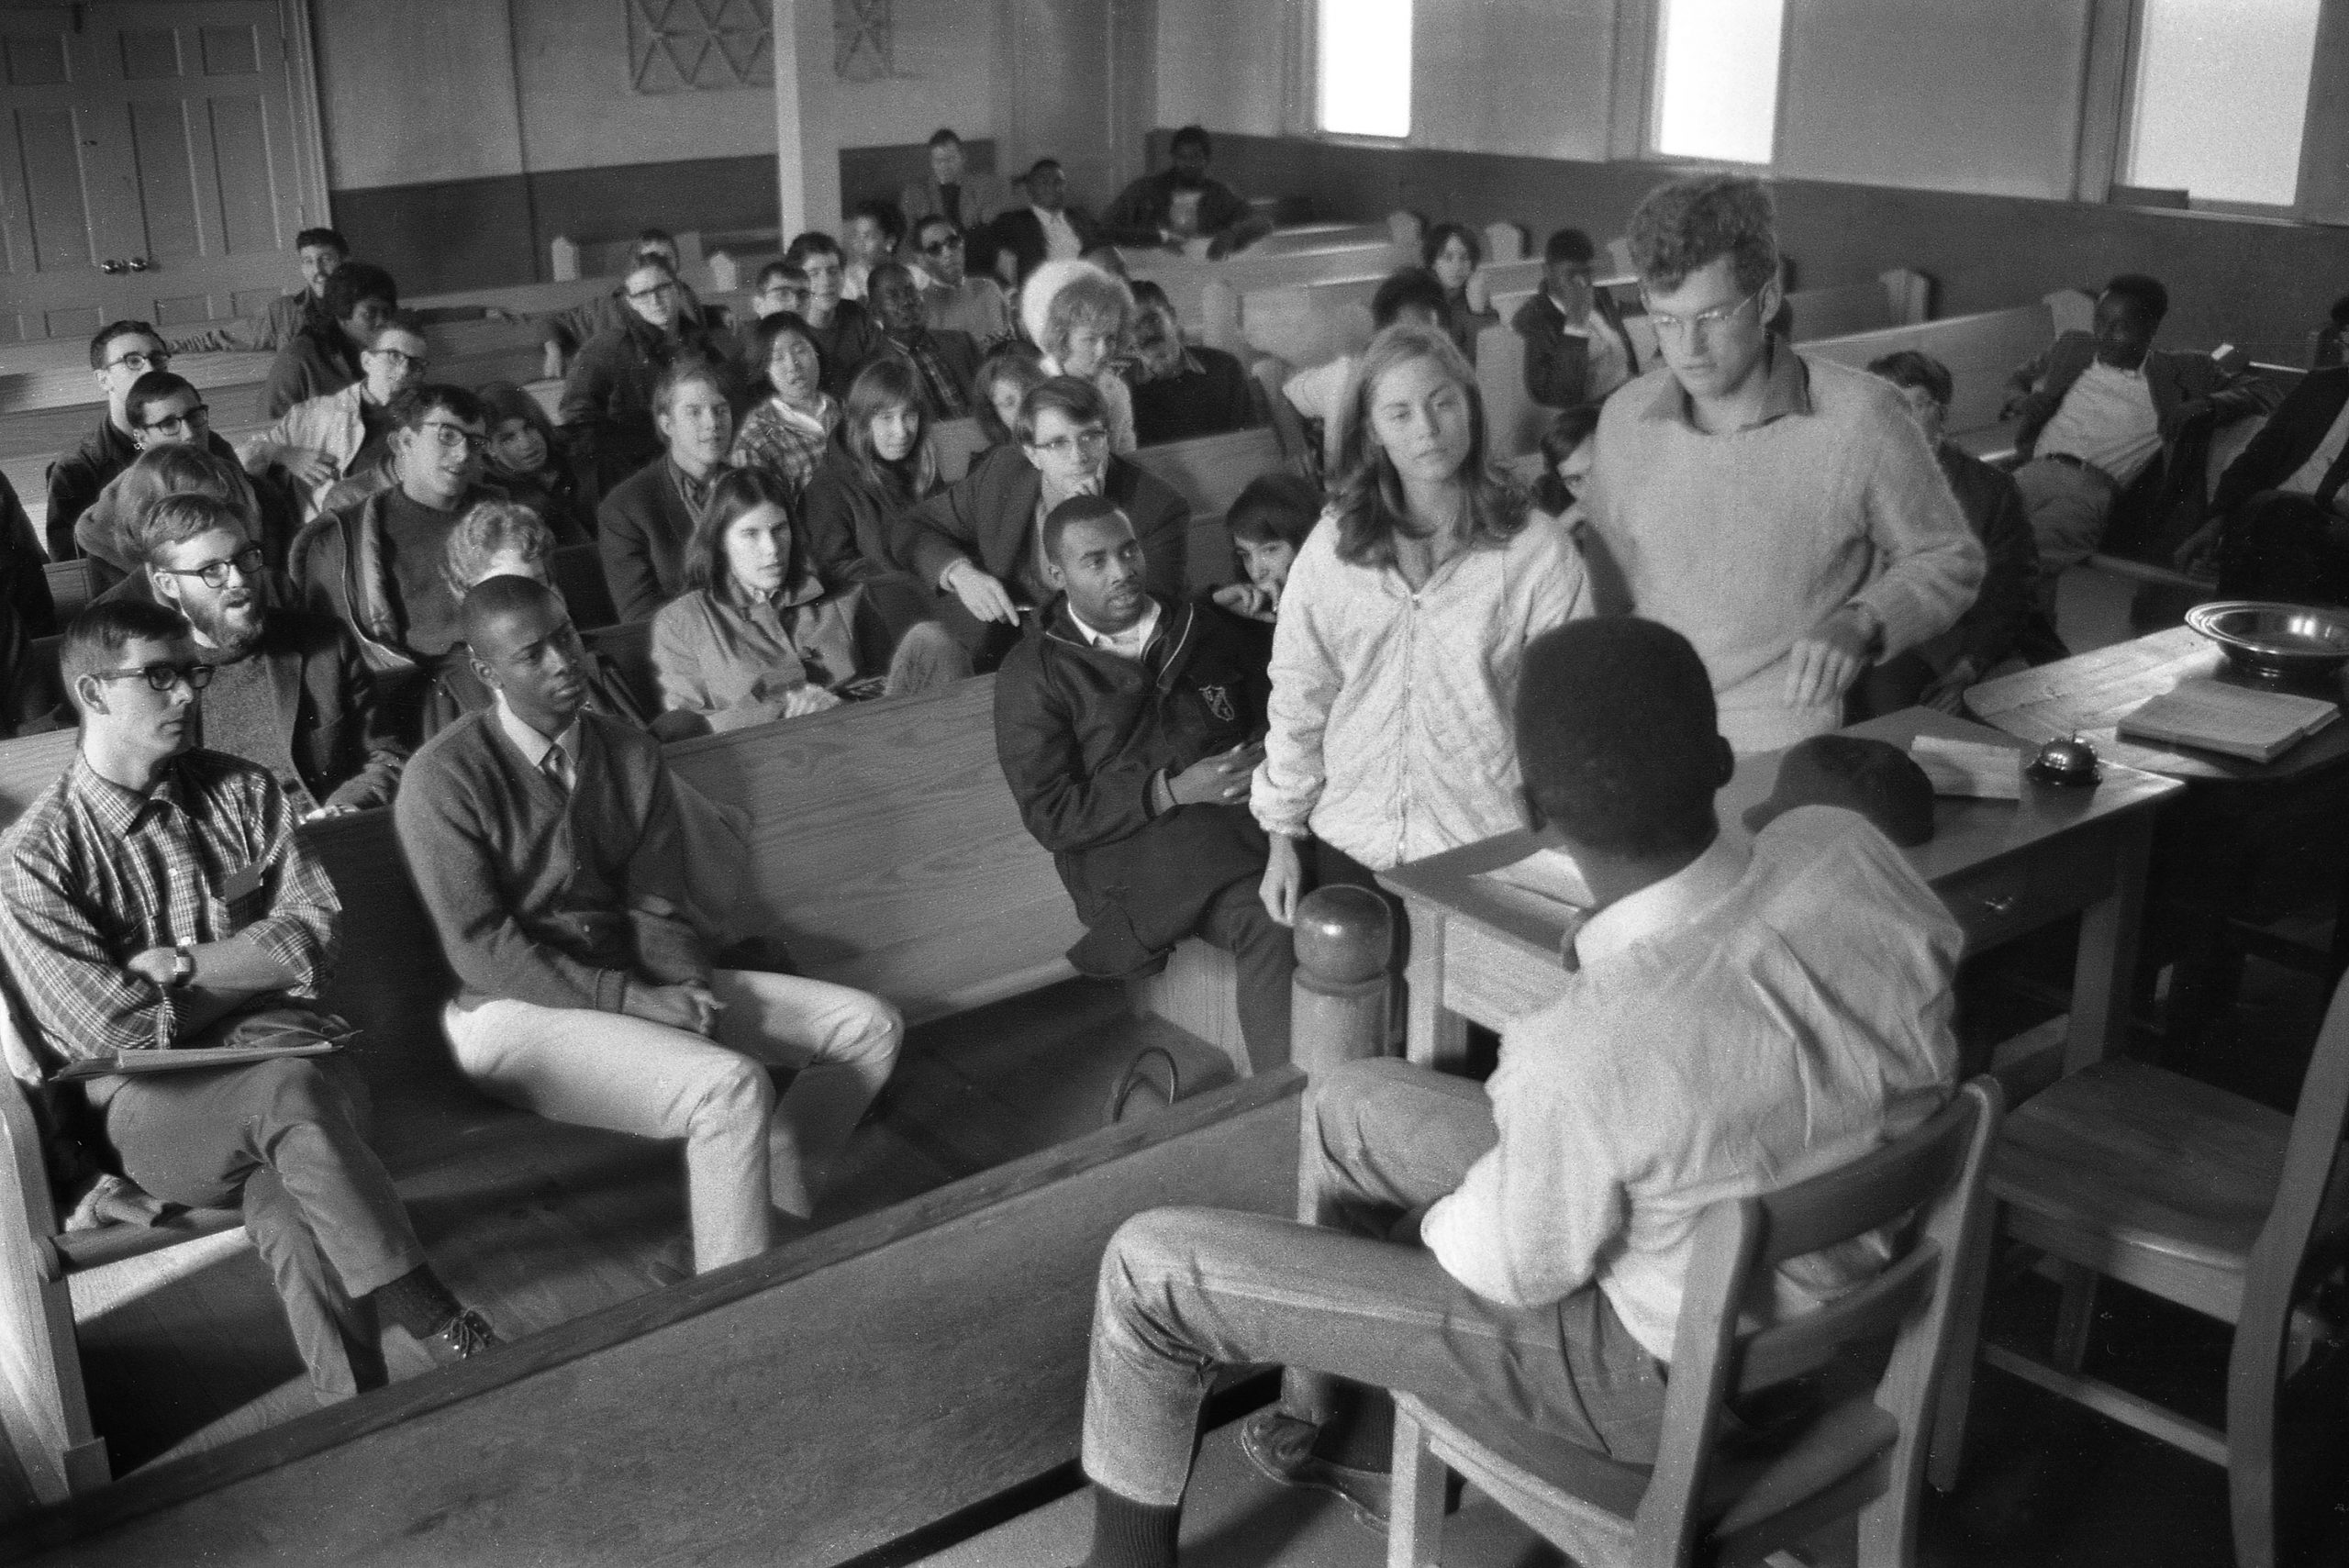 Northern students role-play during voter registration orientation in a black church in Jackson, Mississippi, December, 1965